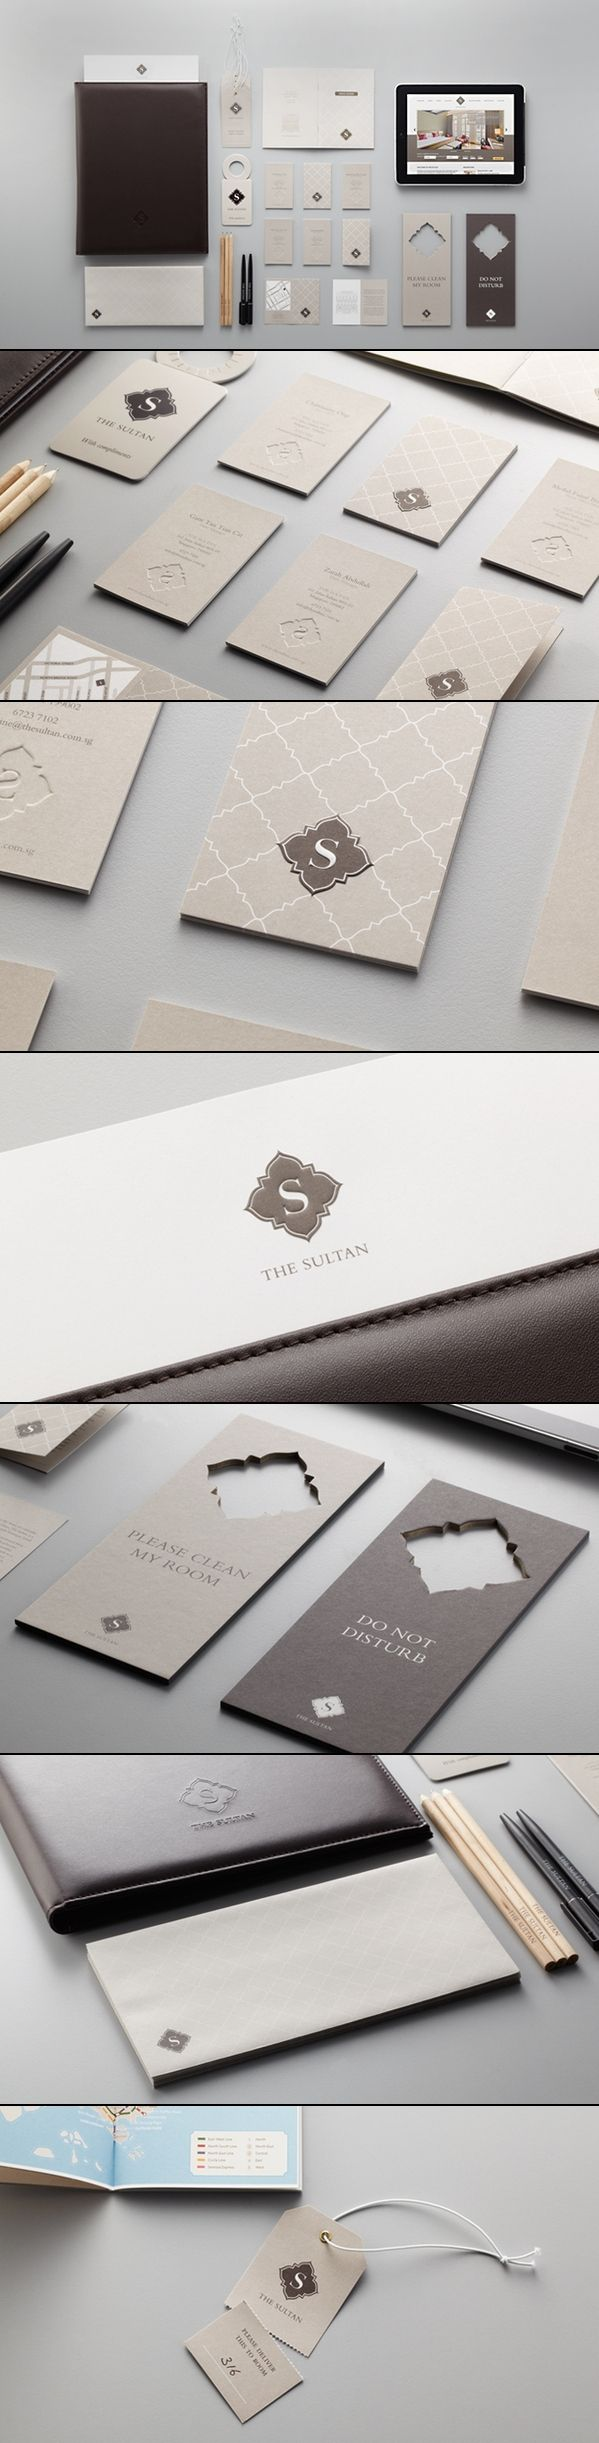 "Boutique Hotel ""The Sultan"" Brand Identity via Behance"